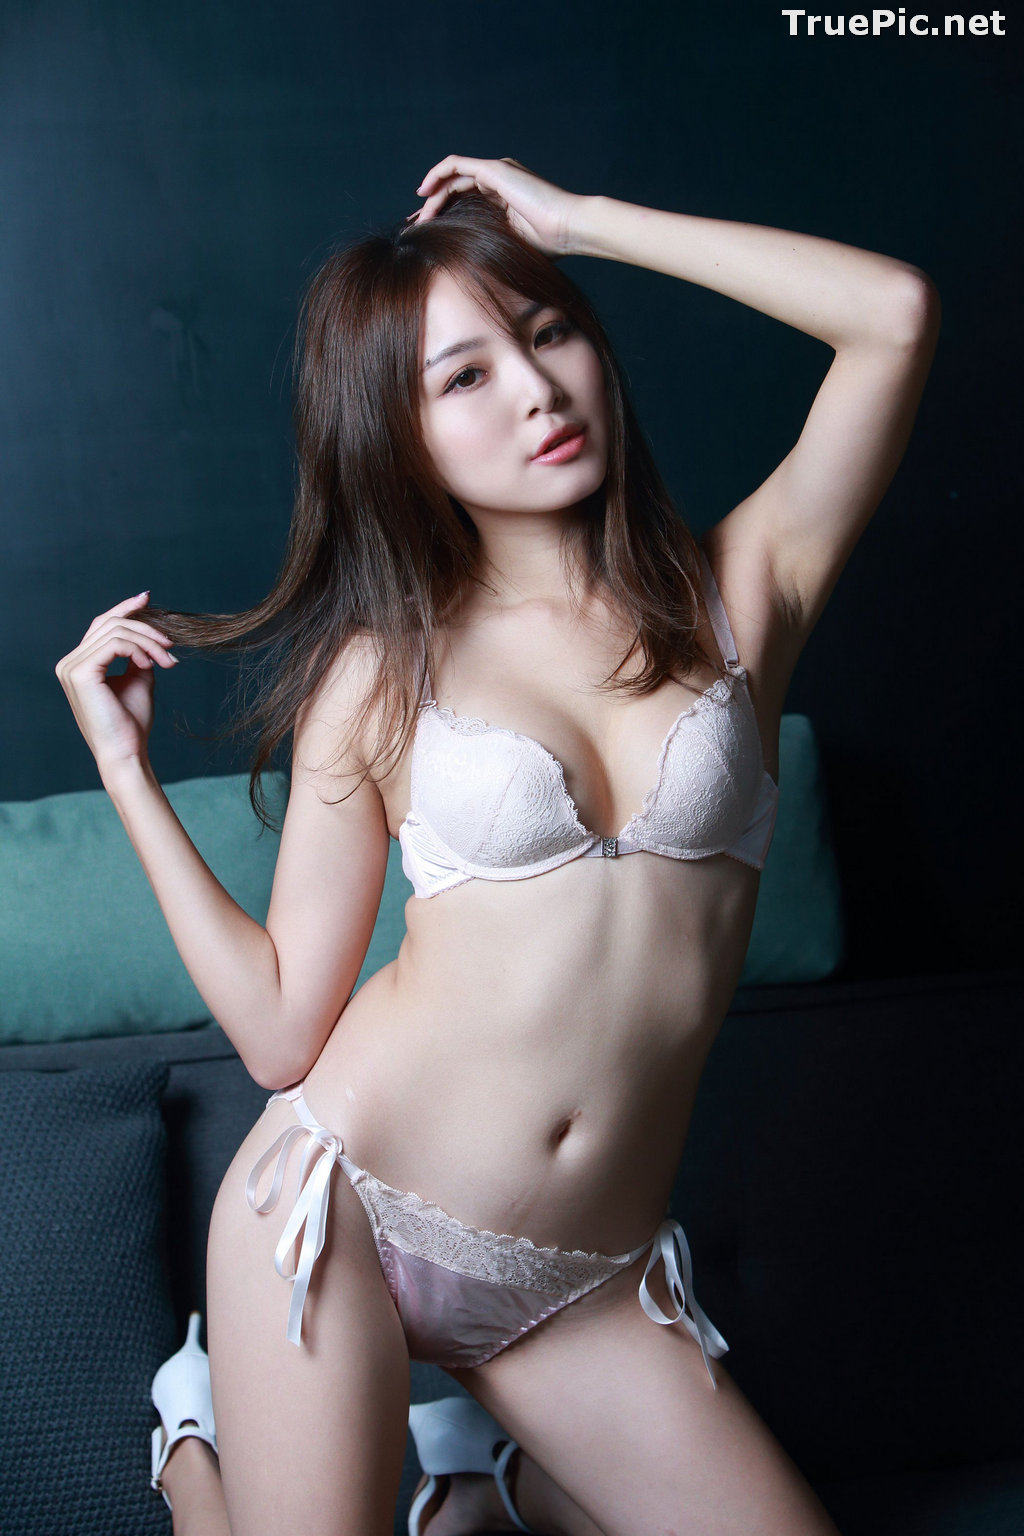 Image Taiwanese Model - Ash Ley - Sexy Girl and White Lingerie - TruePic.net - Picture-5